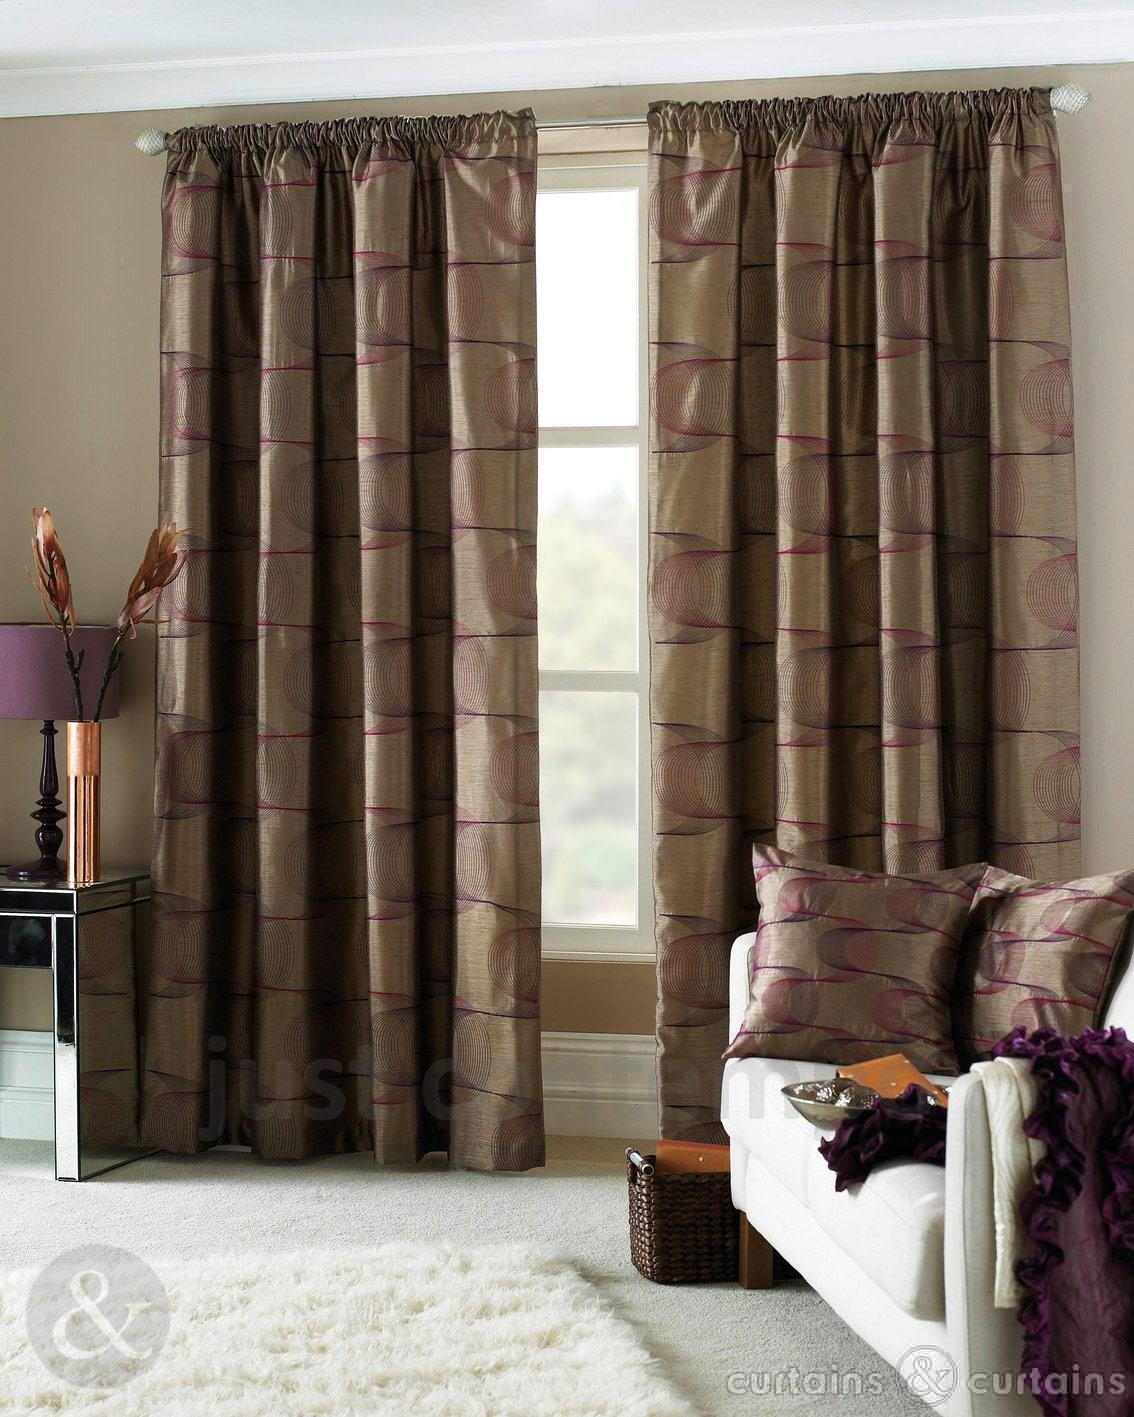 Extra Long Thermal Curtains Uk Best Curtains 2017 Pertaining To Extra Long Thermal Curtains (Image 9 of 15)